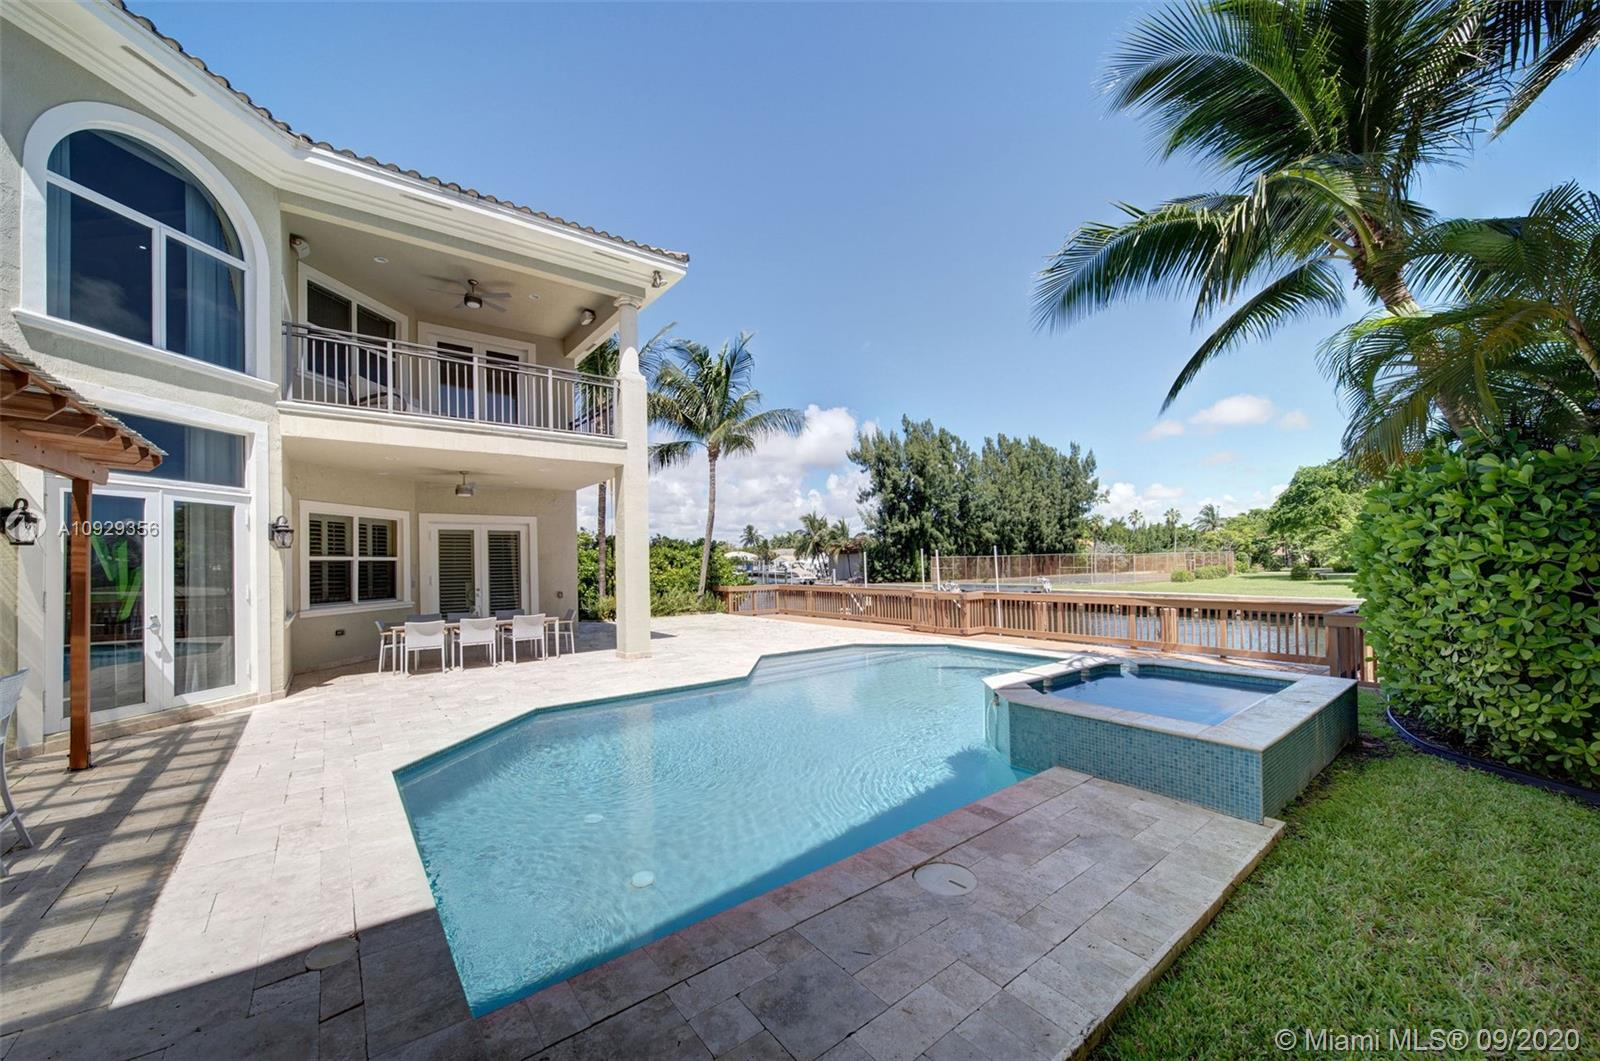 This luxury waterfront 2-story home is nestled on a quiet cul-de-sac in the prestigious guard/gated boating community, Three Islands. This home features 5 BD/4.1 BA, and boasts 65 ft water frontage, private dock and boat lift with ocean access. Spacious floor plan offers generous open kitchen with island, breakfast nook and family room. Elegant formal dining. Living room with double height ceiling. Spacious Master Suite includes his/hers walk-in closets, sitting area and private terrace with intercoastal views. The backyard is a tropical oasis with covered patios, summer kitchen, and heated pool with spa. 2 car garage + storage. Turnkey ready. Amenities include clubhouse, fitness center, tennis, playground, and basketball court. Short drive to beach, world famous shopping and dining.